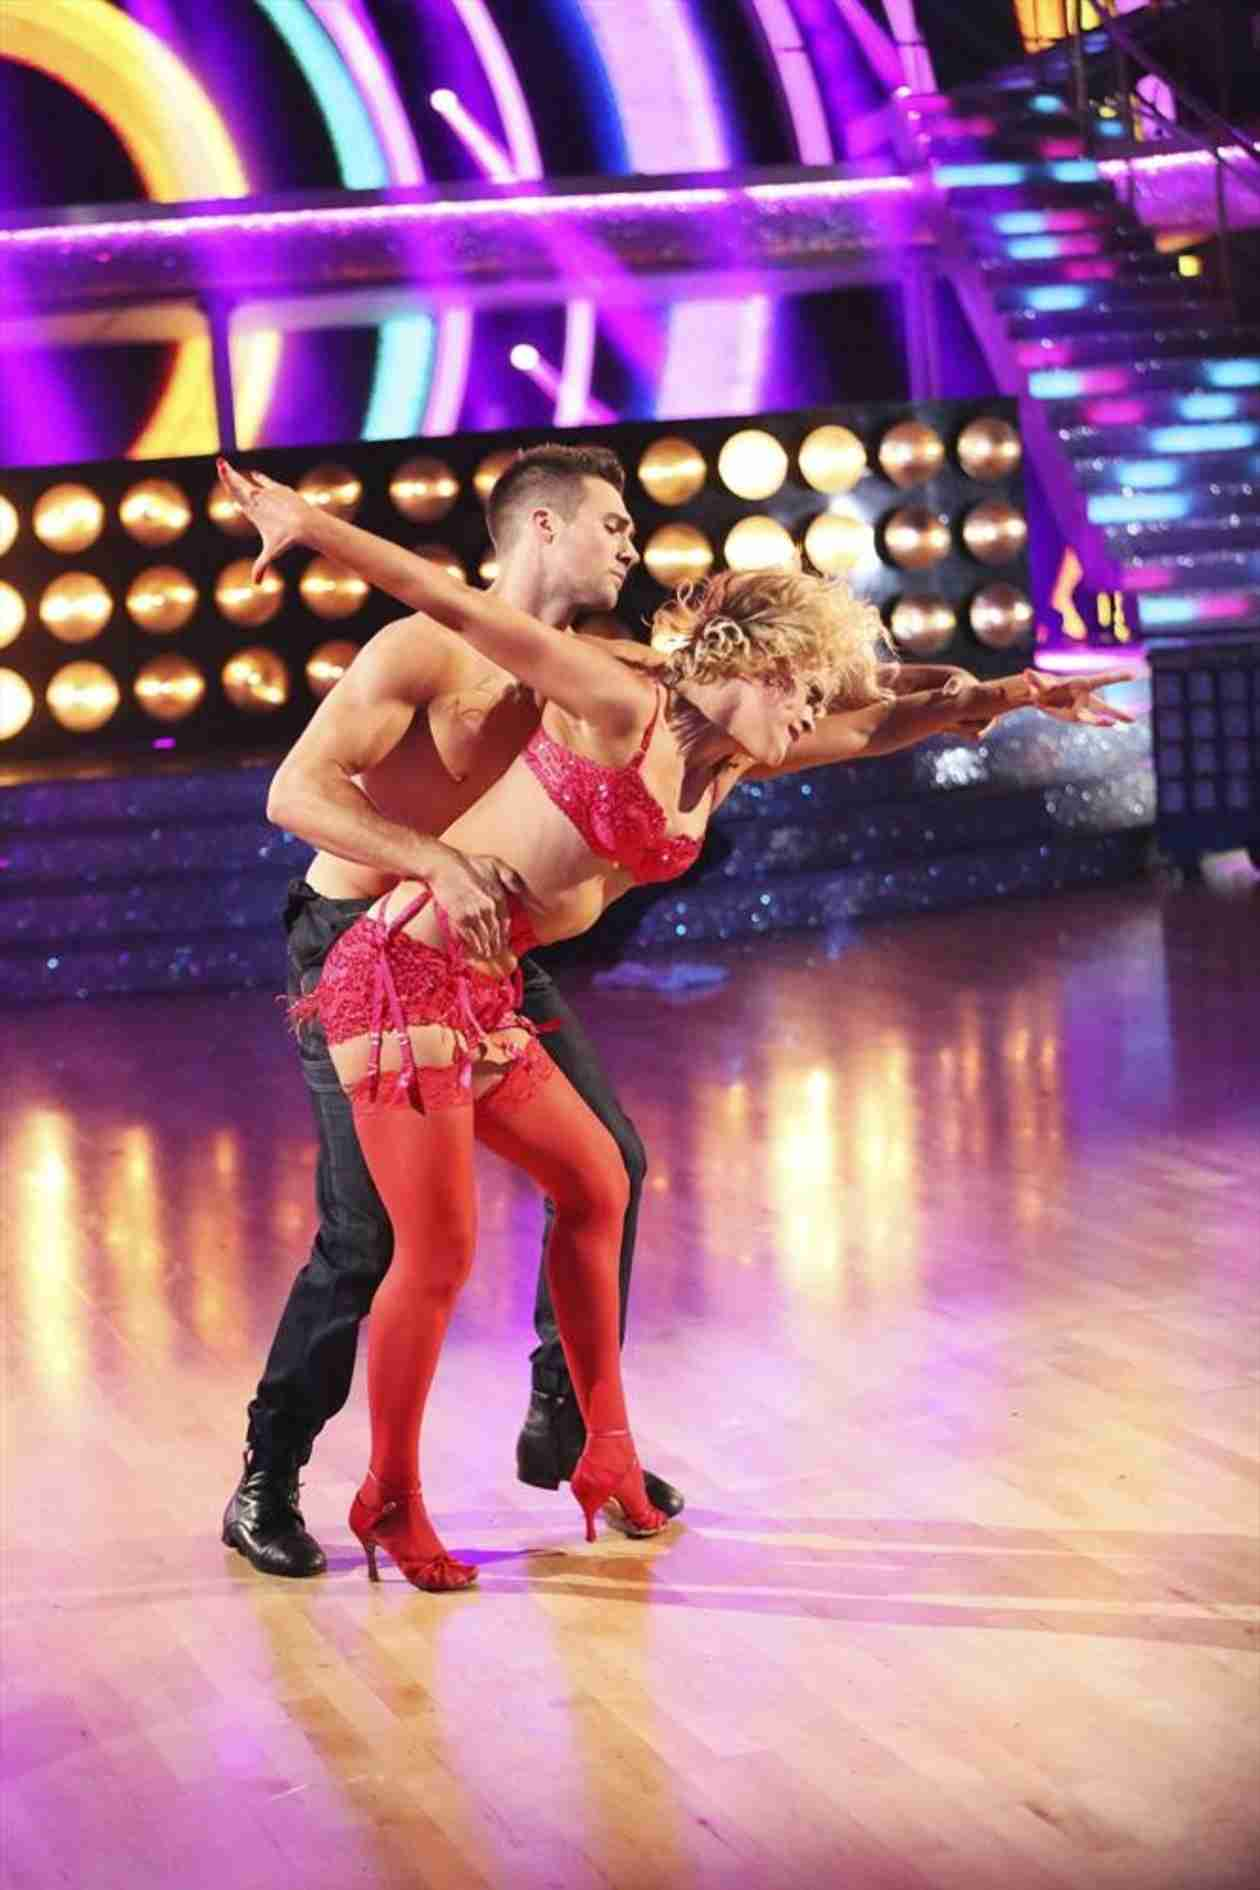 Dancing With the Stars 2014: James Maslow and Peta Murgatroyd's Week 9 Rumba (VIDEO)